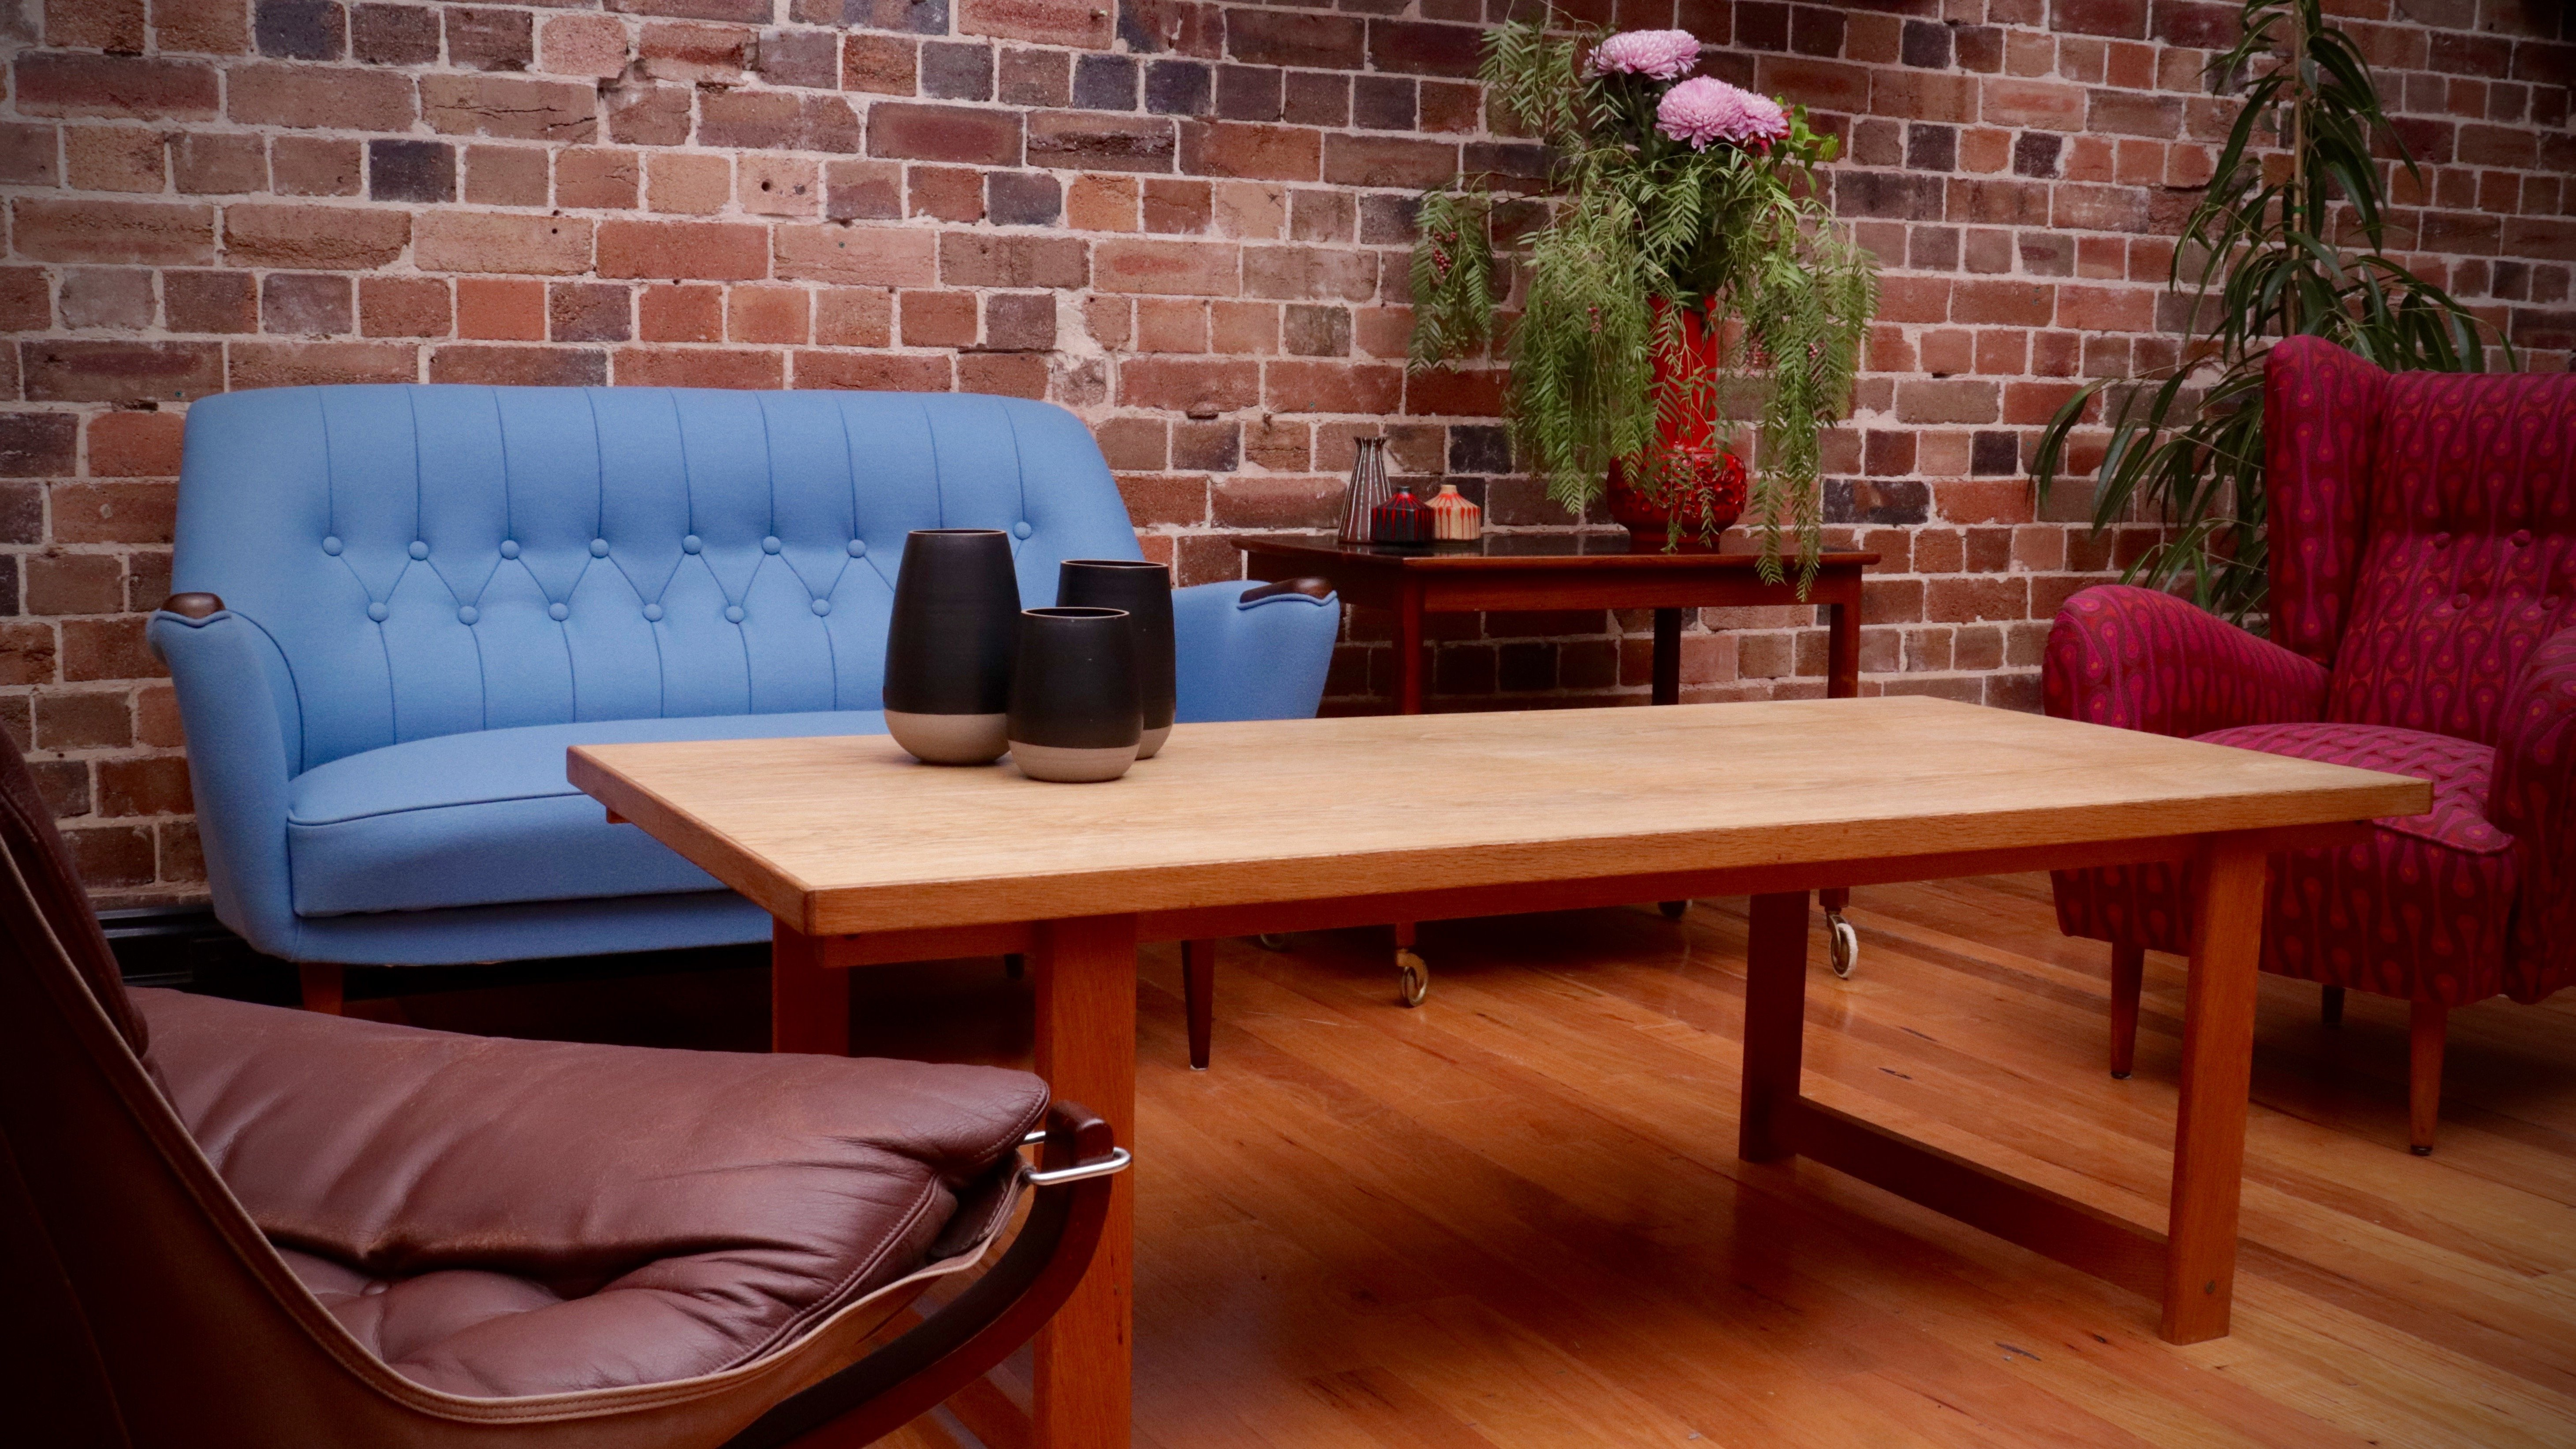 Retro, Vintage, Mid Century Modern Furniture u2013 The Terms Explained  Collectika Vintage and